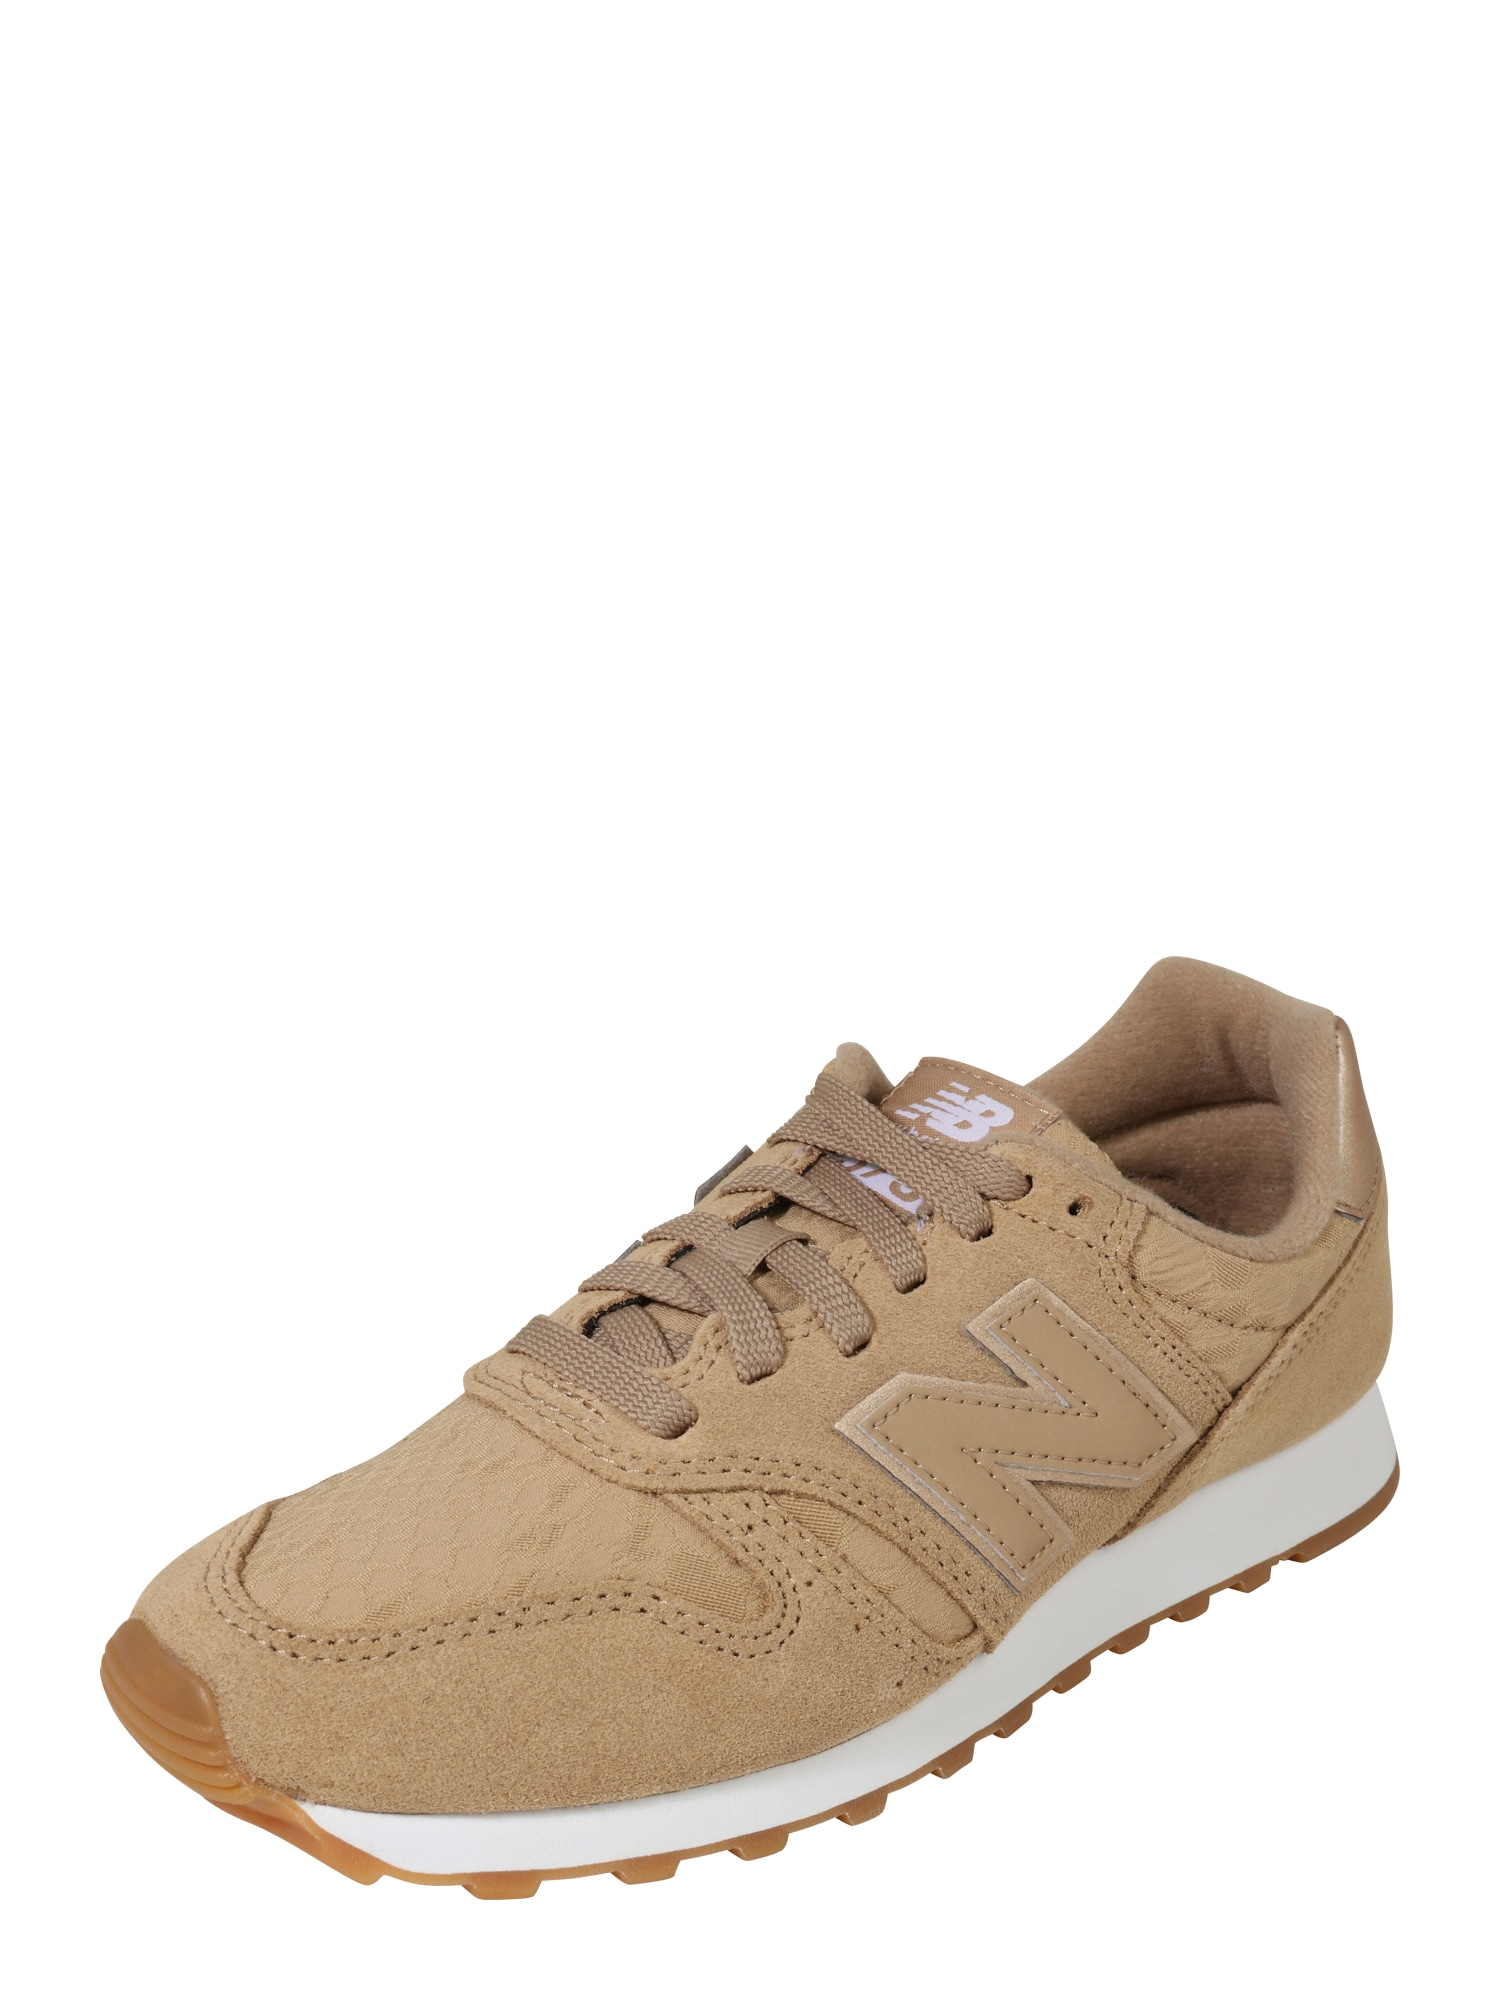 New Balance, Dames Sneakers laag 'WL373', crème / lichtbeige